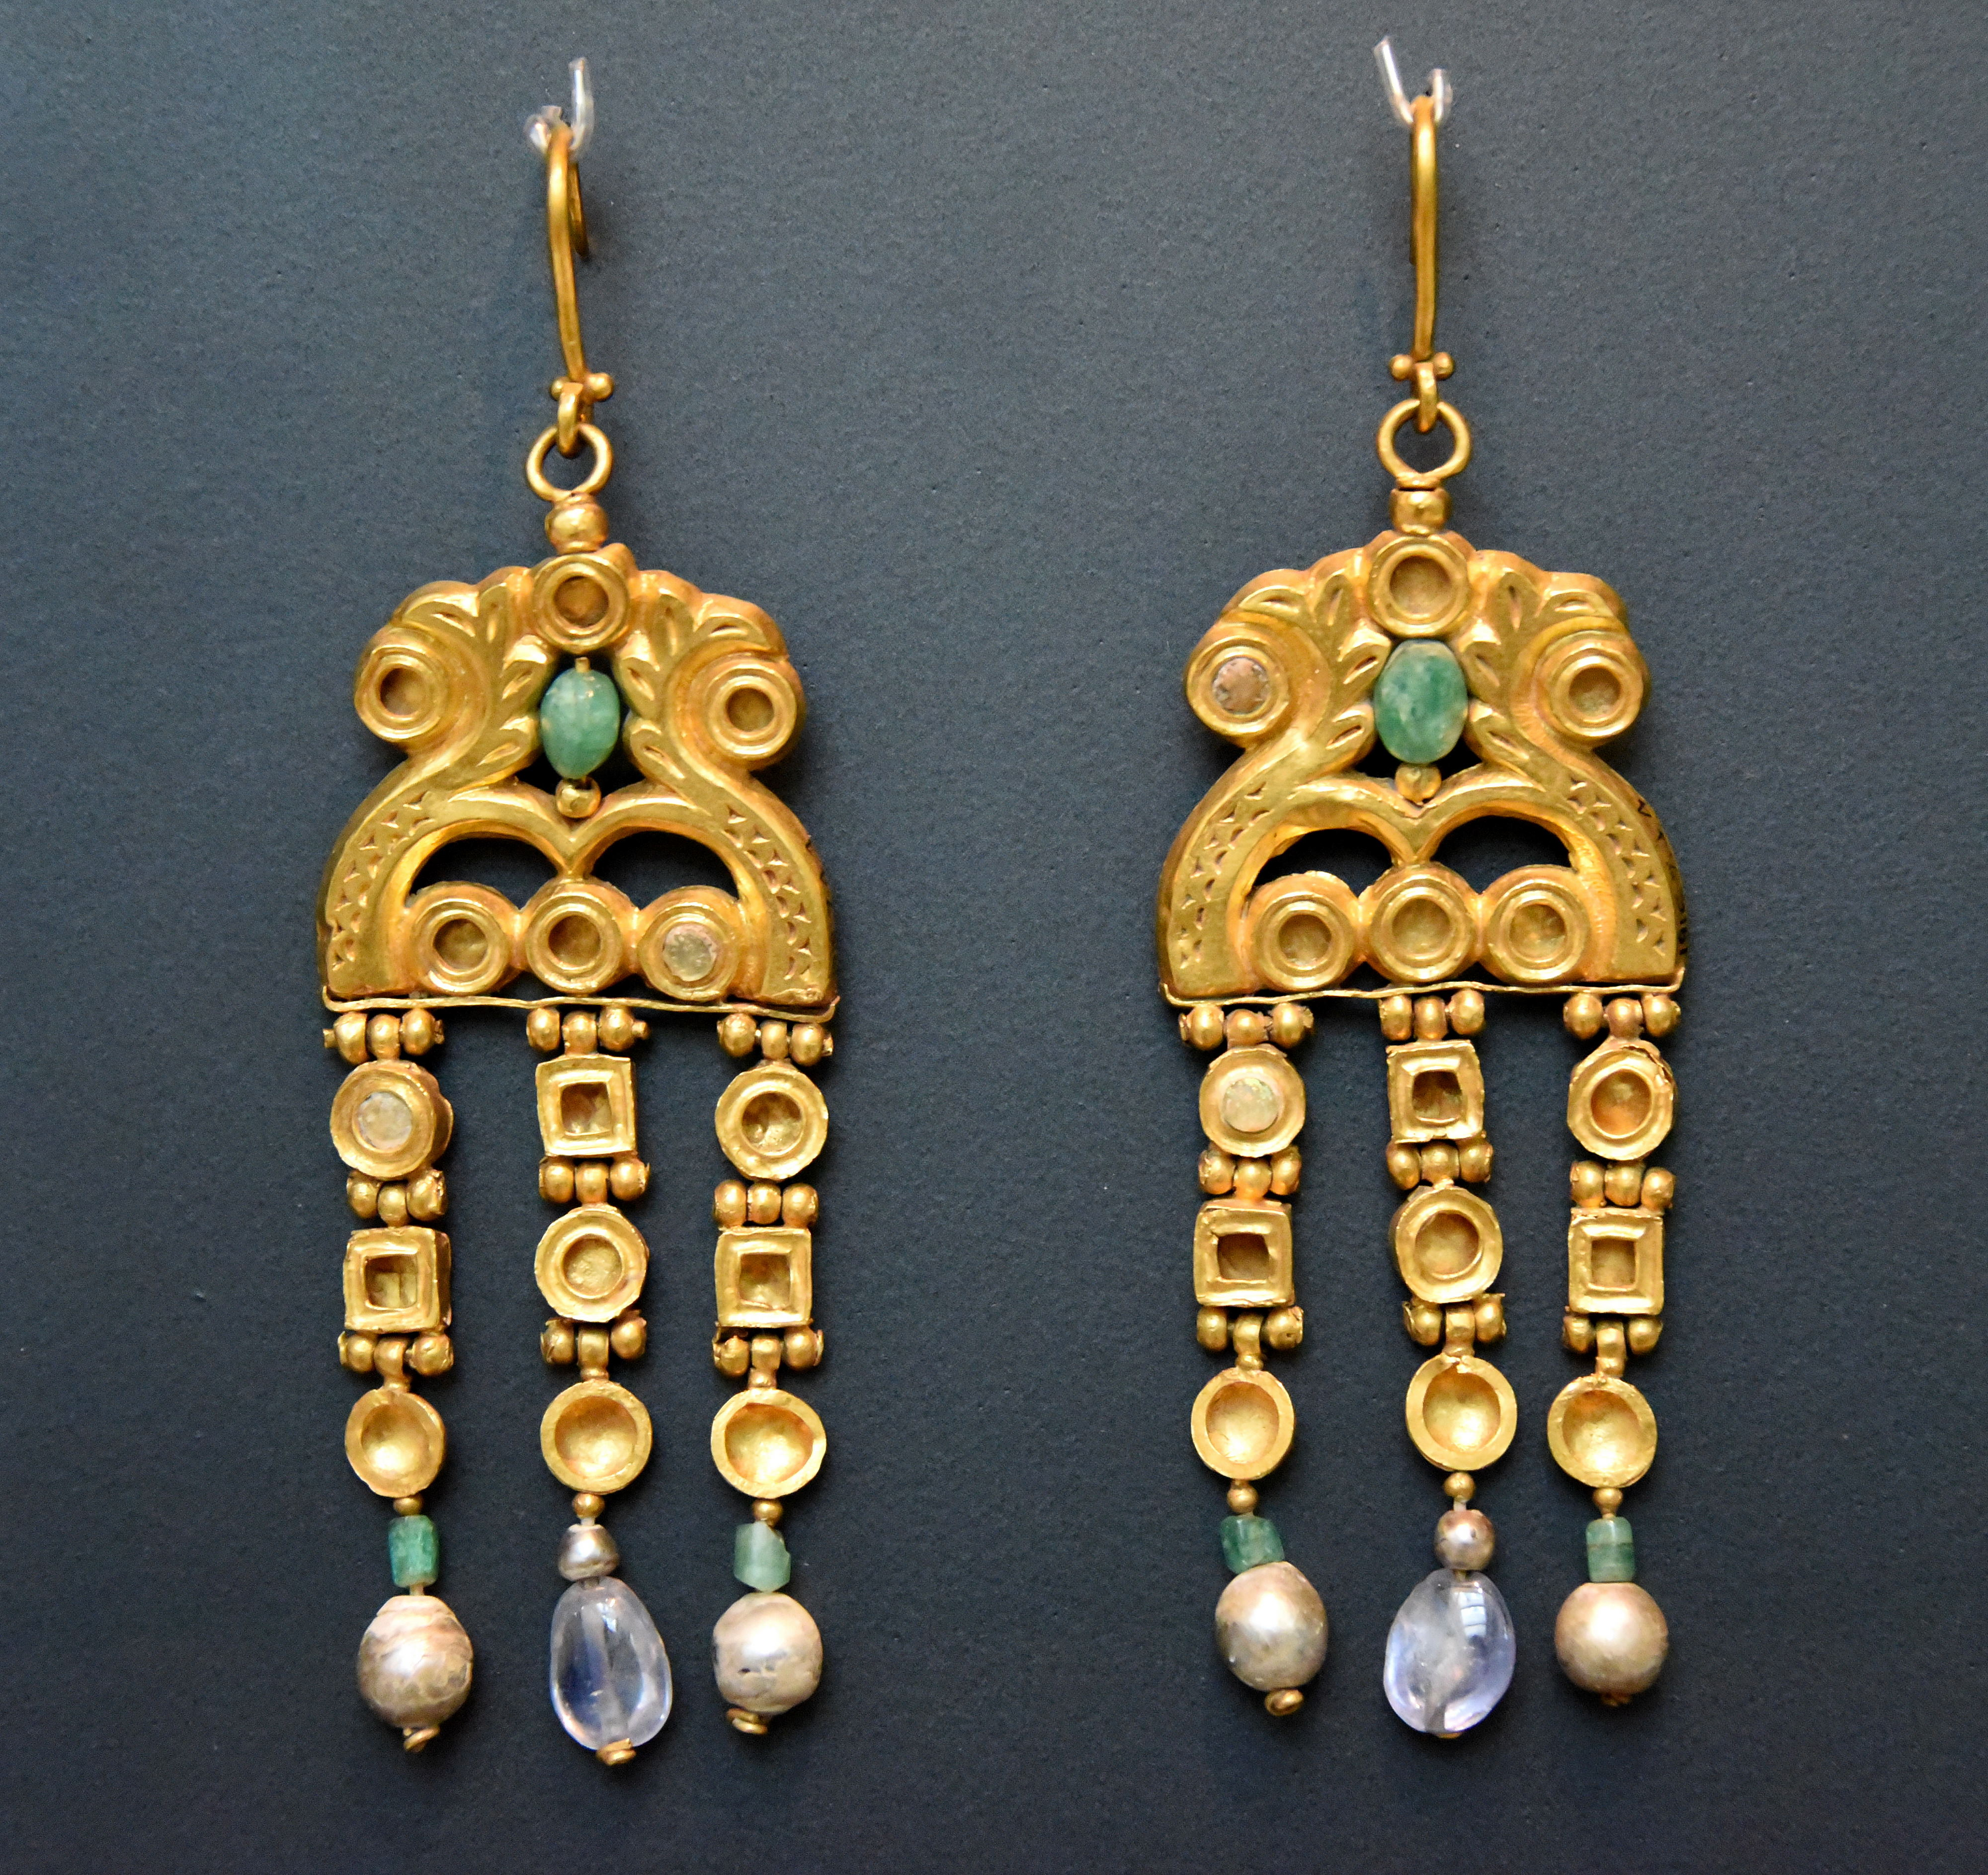 These Earrings Show The Skill And Quality Achieved By Byzantine Jewellers They Come From A Treasure Of 36 Pieces Found In Egypt Is Shared